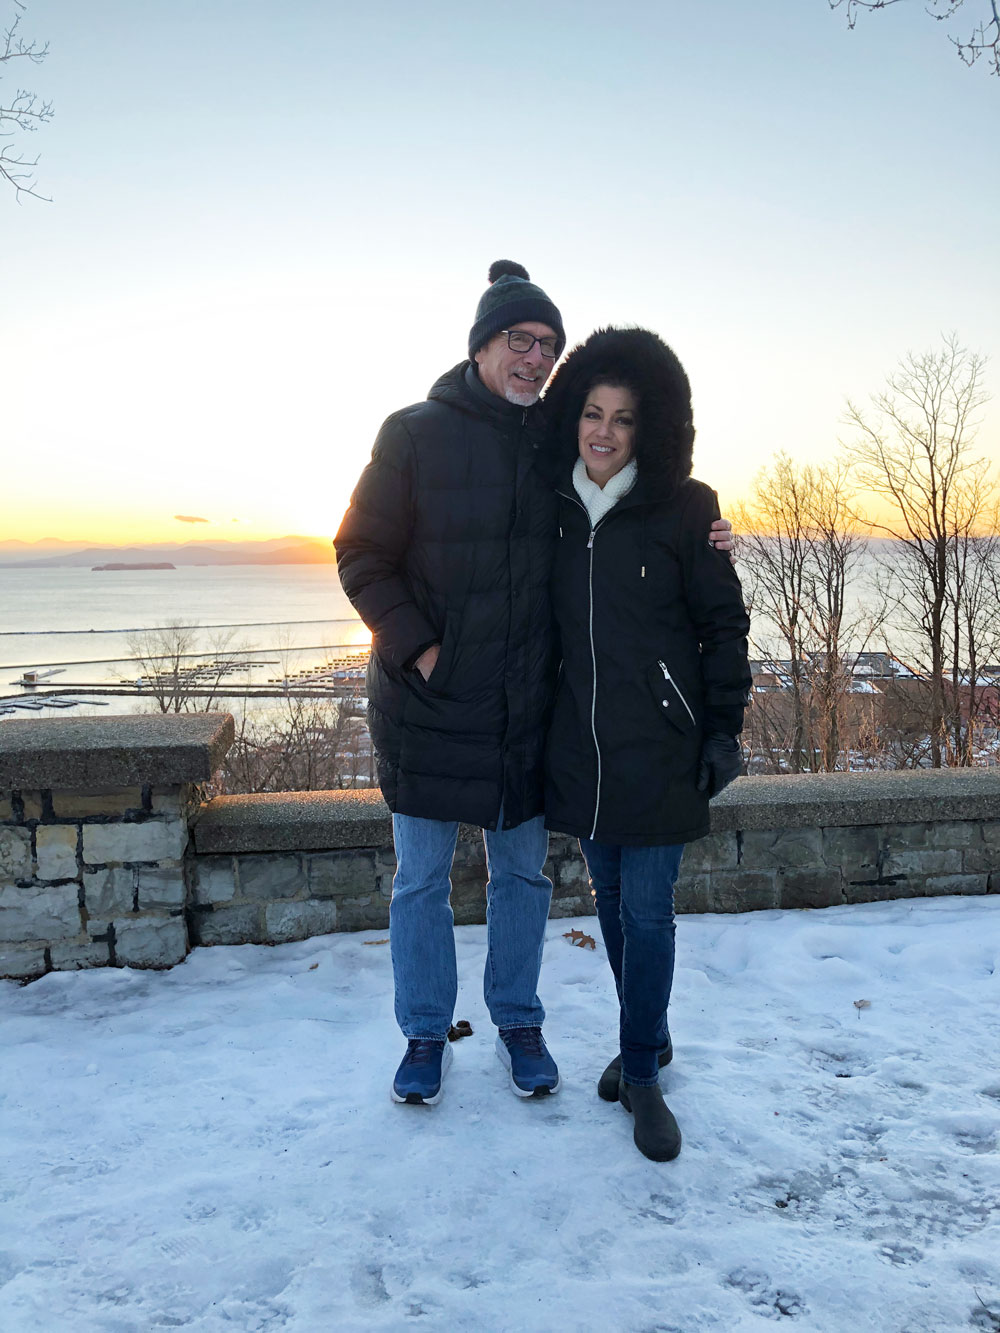 Into the sunset: Jim and Jodi Tager on the shores of Lake Champlain in Vermont earlier this month. Jim Tager was appointed superintendent of three small school districts there this week, starting in July. (Jim Tager)